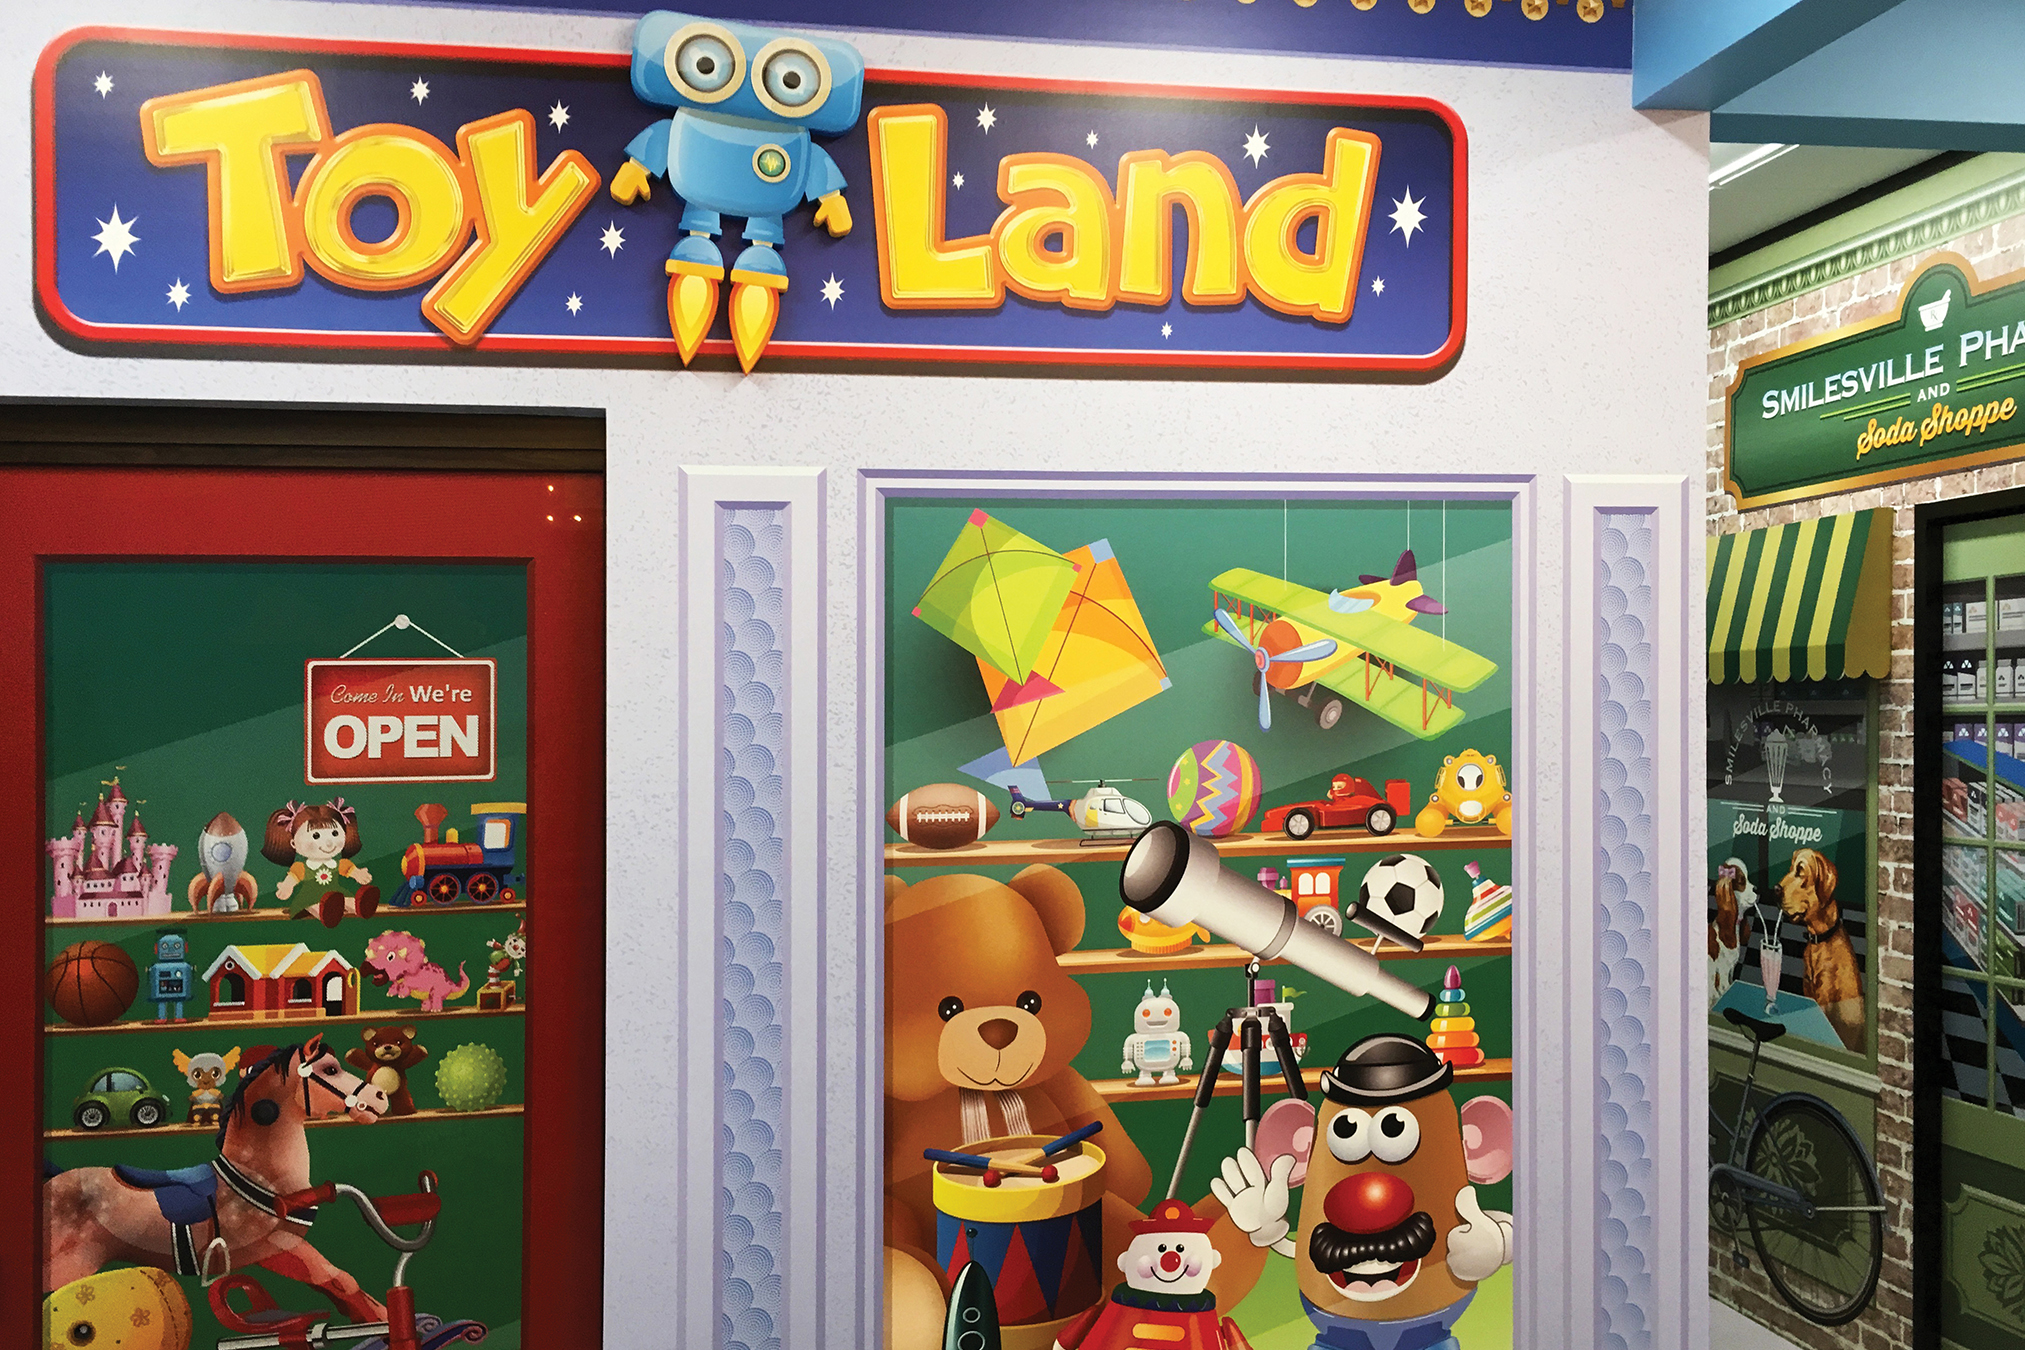 Toy Store Themed Wall Mural for Pediatric Dentistry